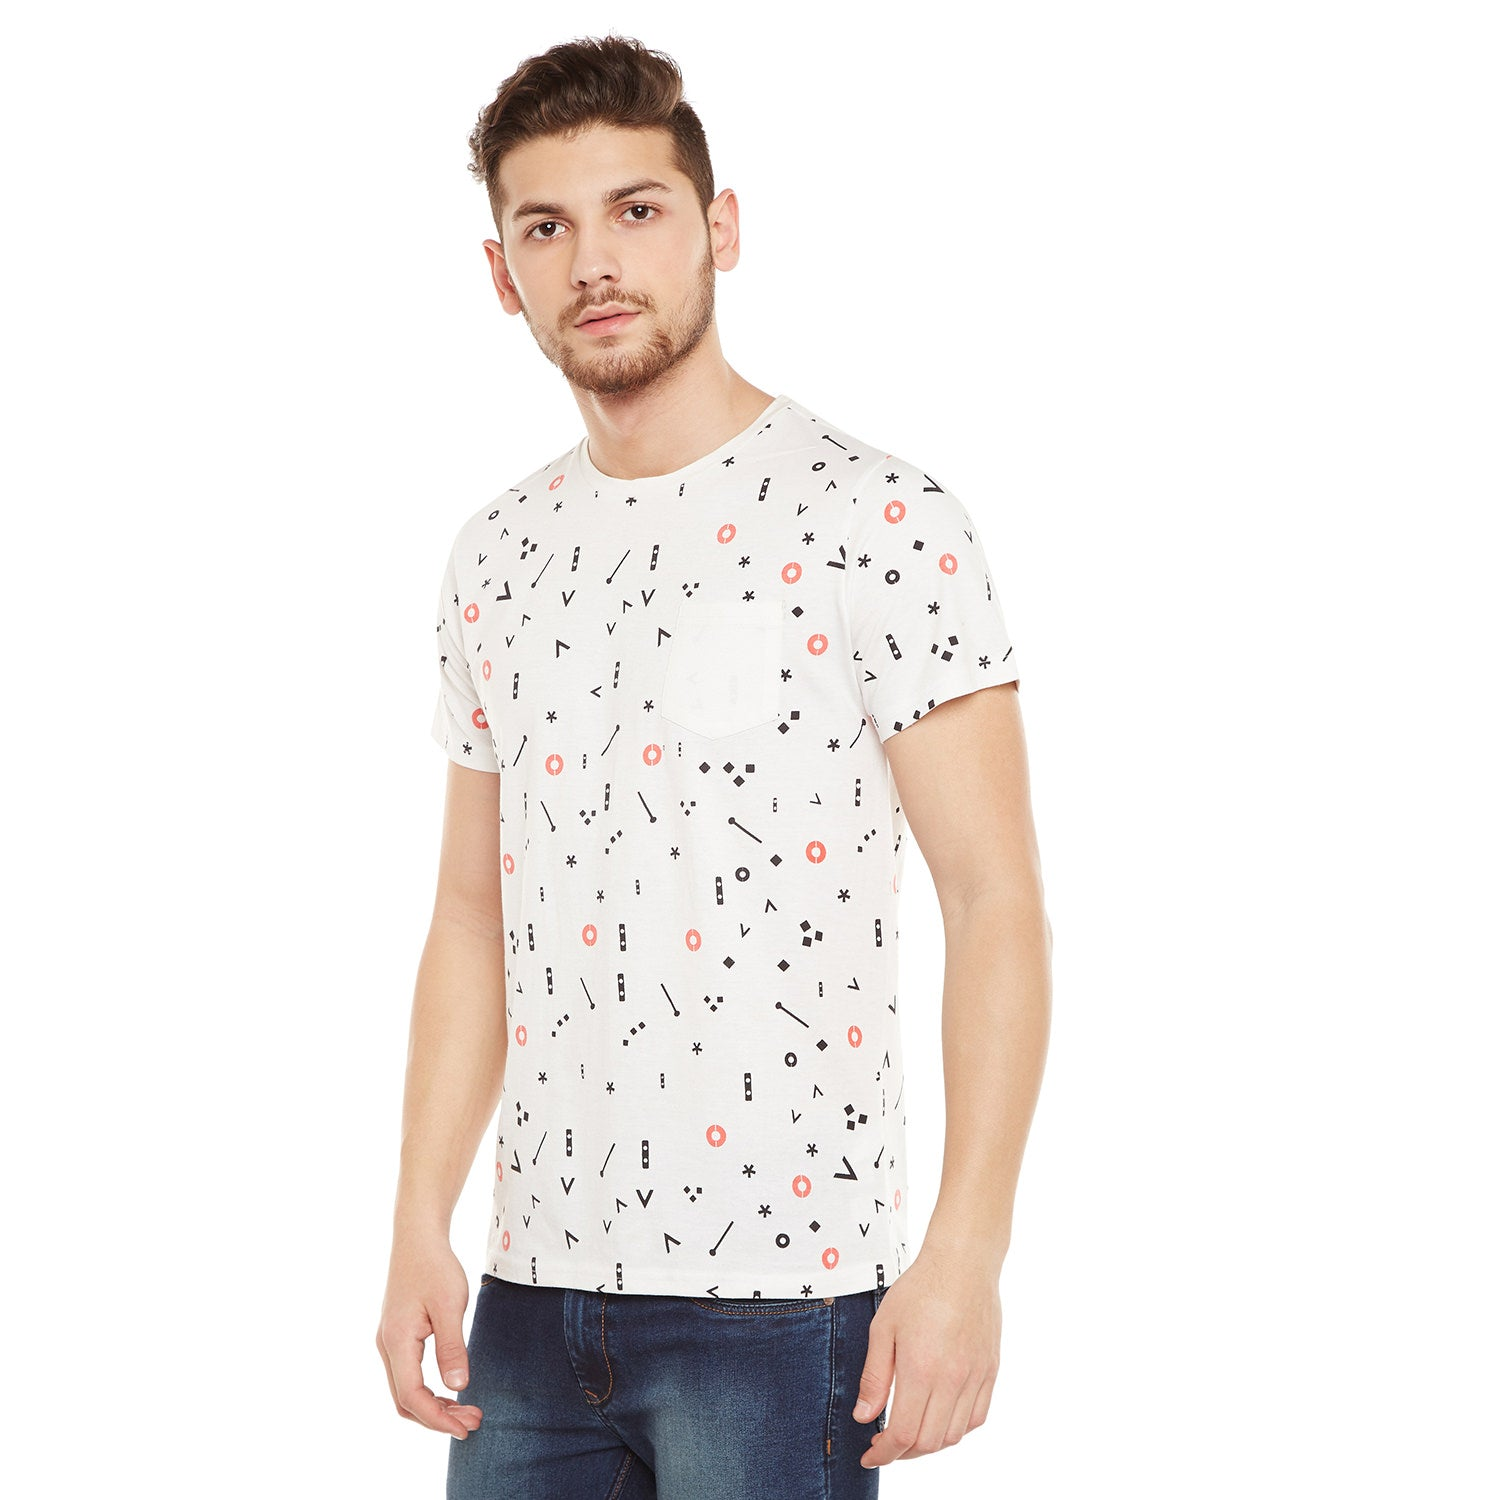 Atorse Mens Half Sleeves T-Shirt With Music Note Printed All